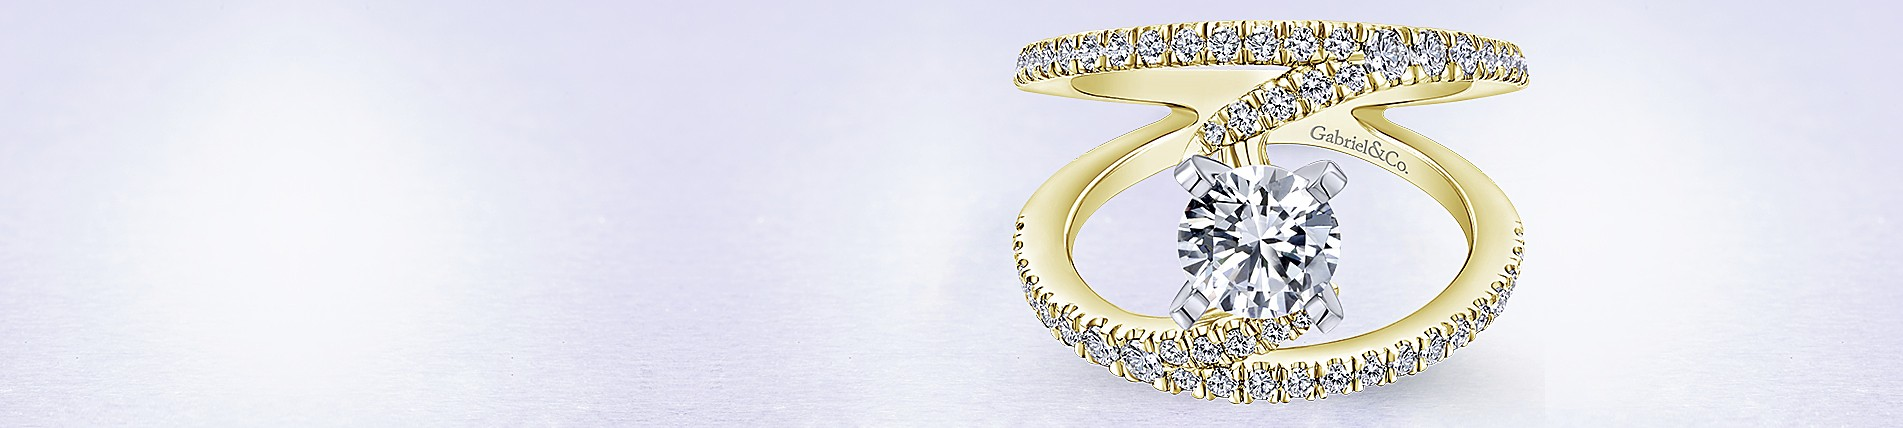 jewellery rings com men women amazon gold his trio diamond set her yellow dp jewelry wedding